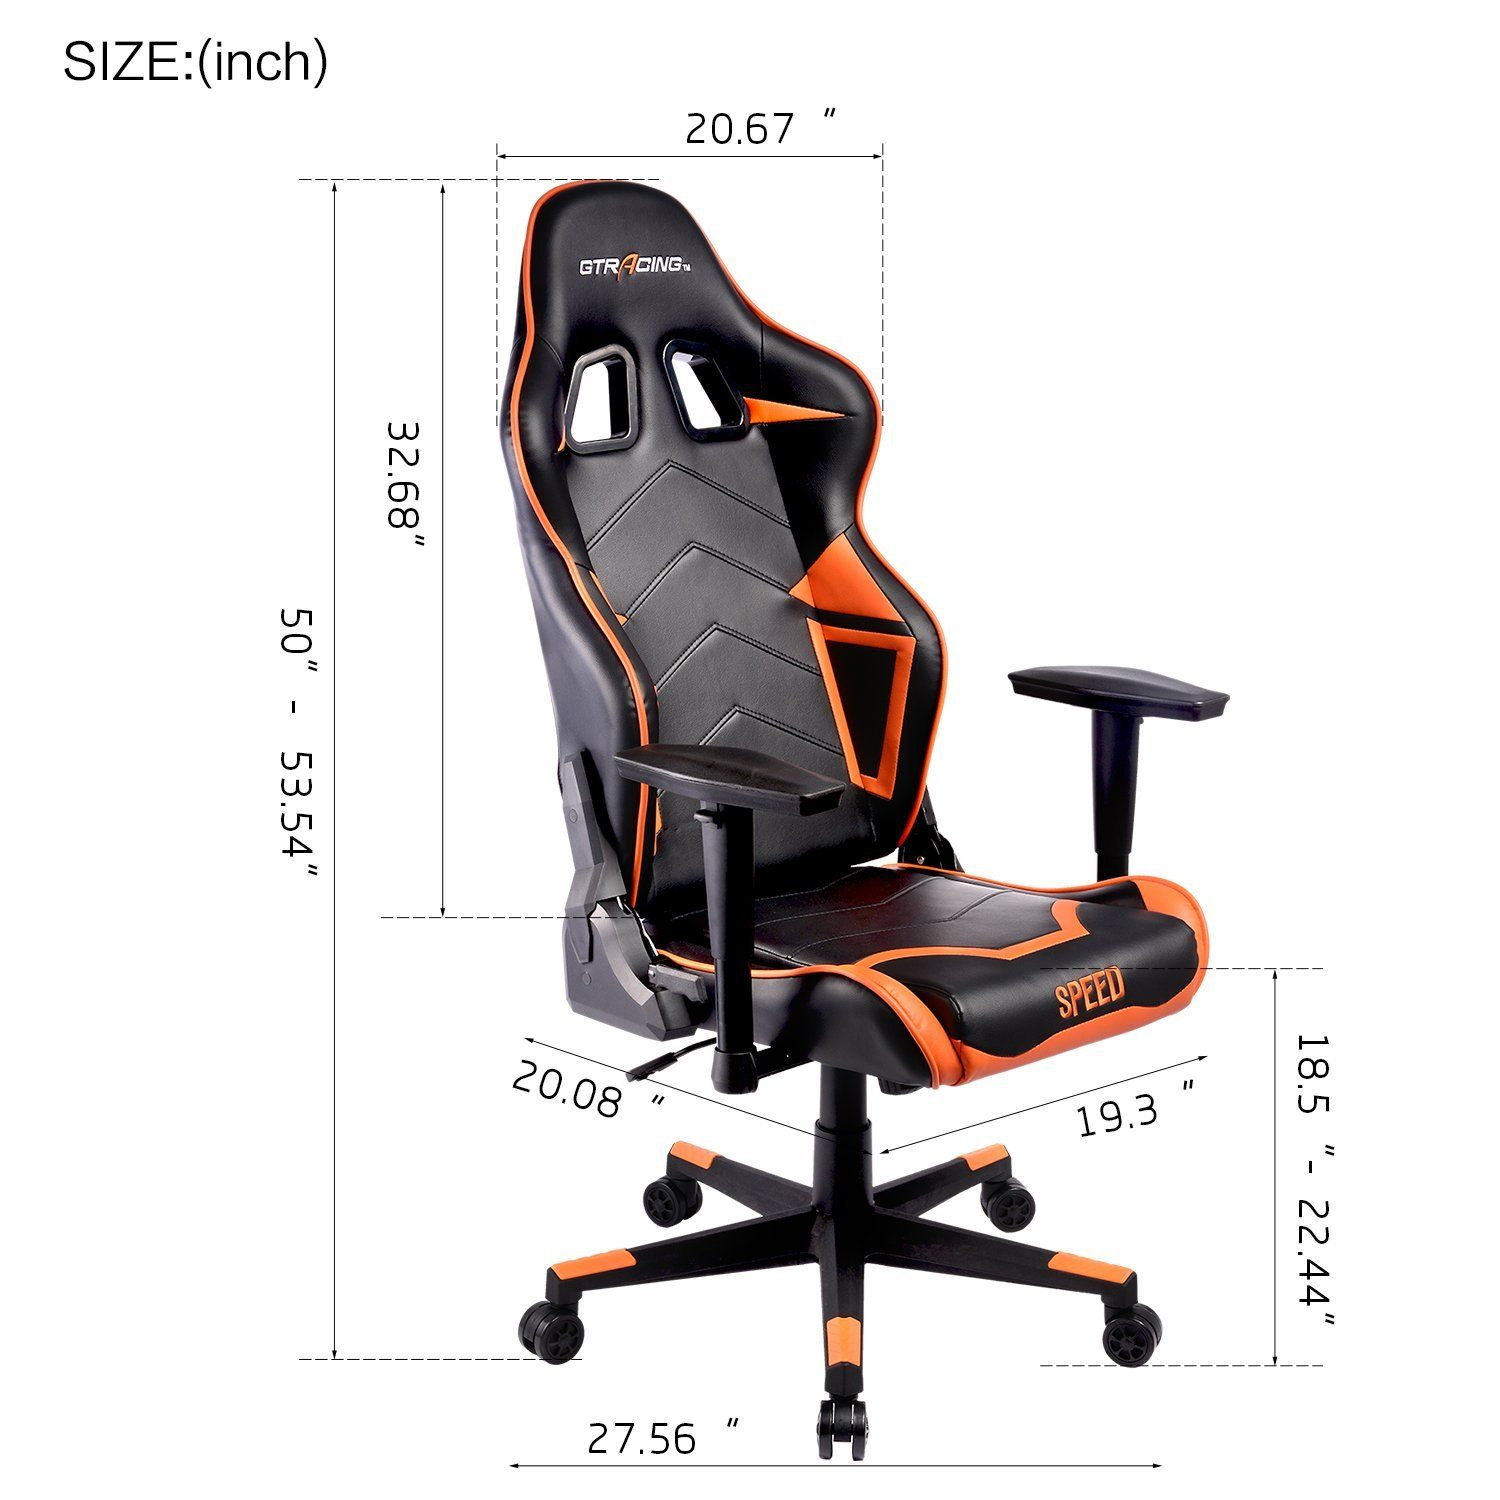 Groovy Gtracing Ergonomic Gaming Chair Reclining Gaming Chair Andrewgaddart Wooden Chair Designs For Living Room Andrewgaddartcom